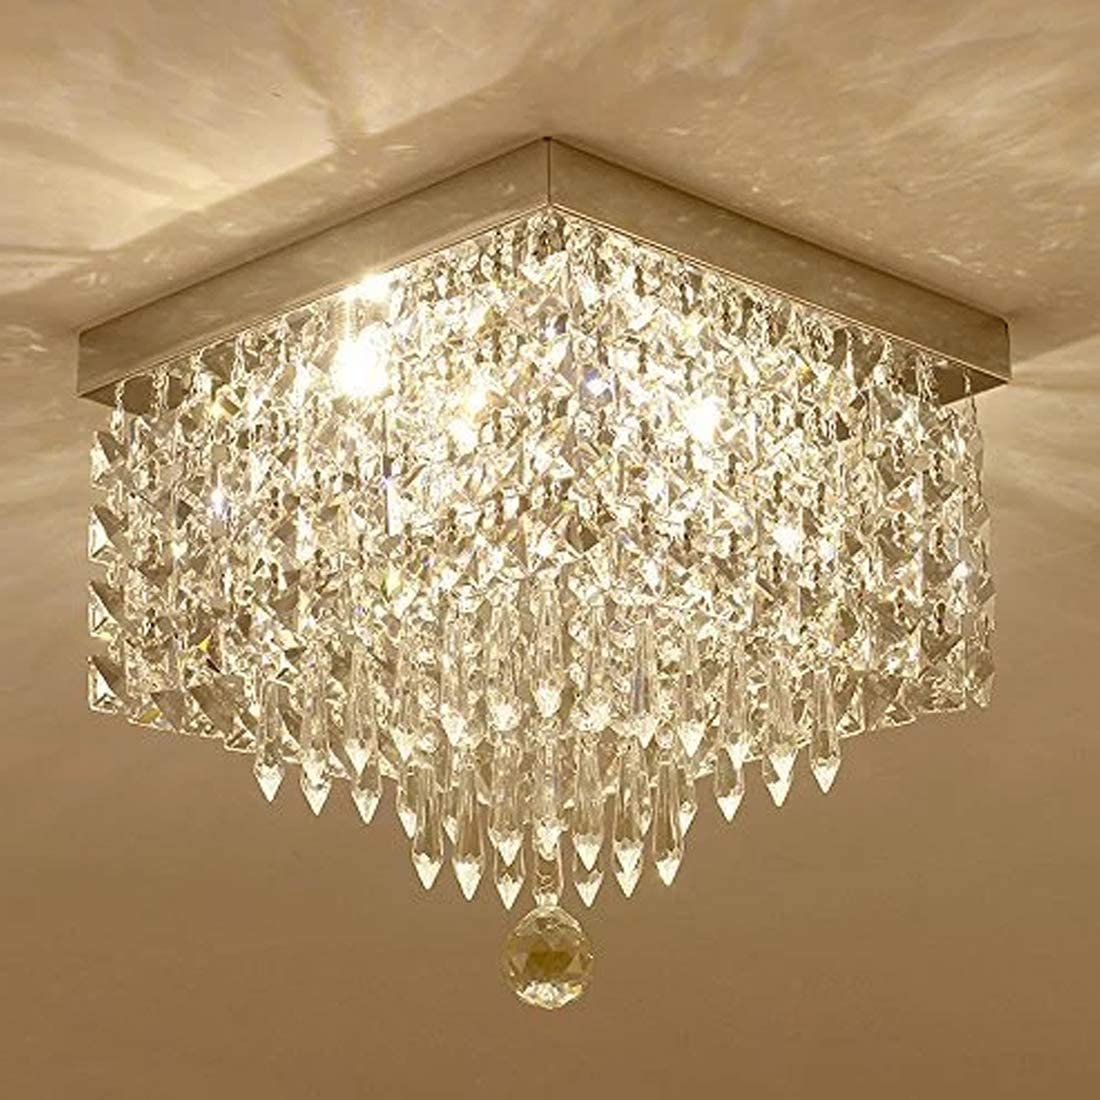 Moooni Hallway Crystal Chandelier Modern Square Raindrop Flush Mount Ceiling Light Fixture for Closet Foyer W12